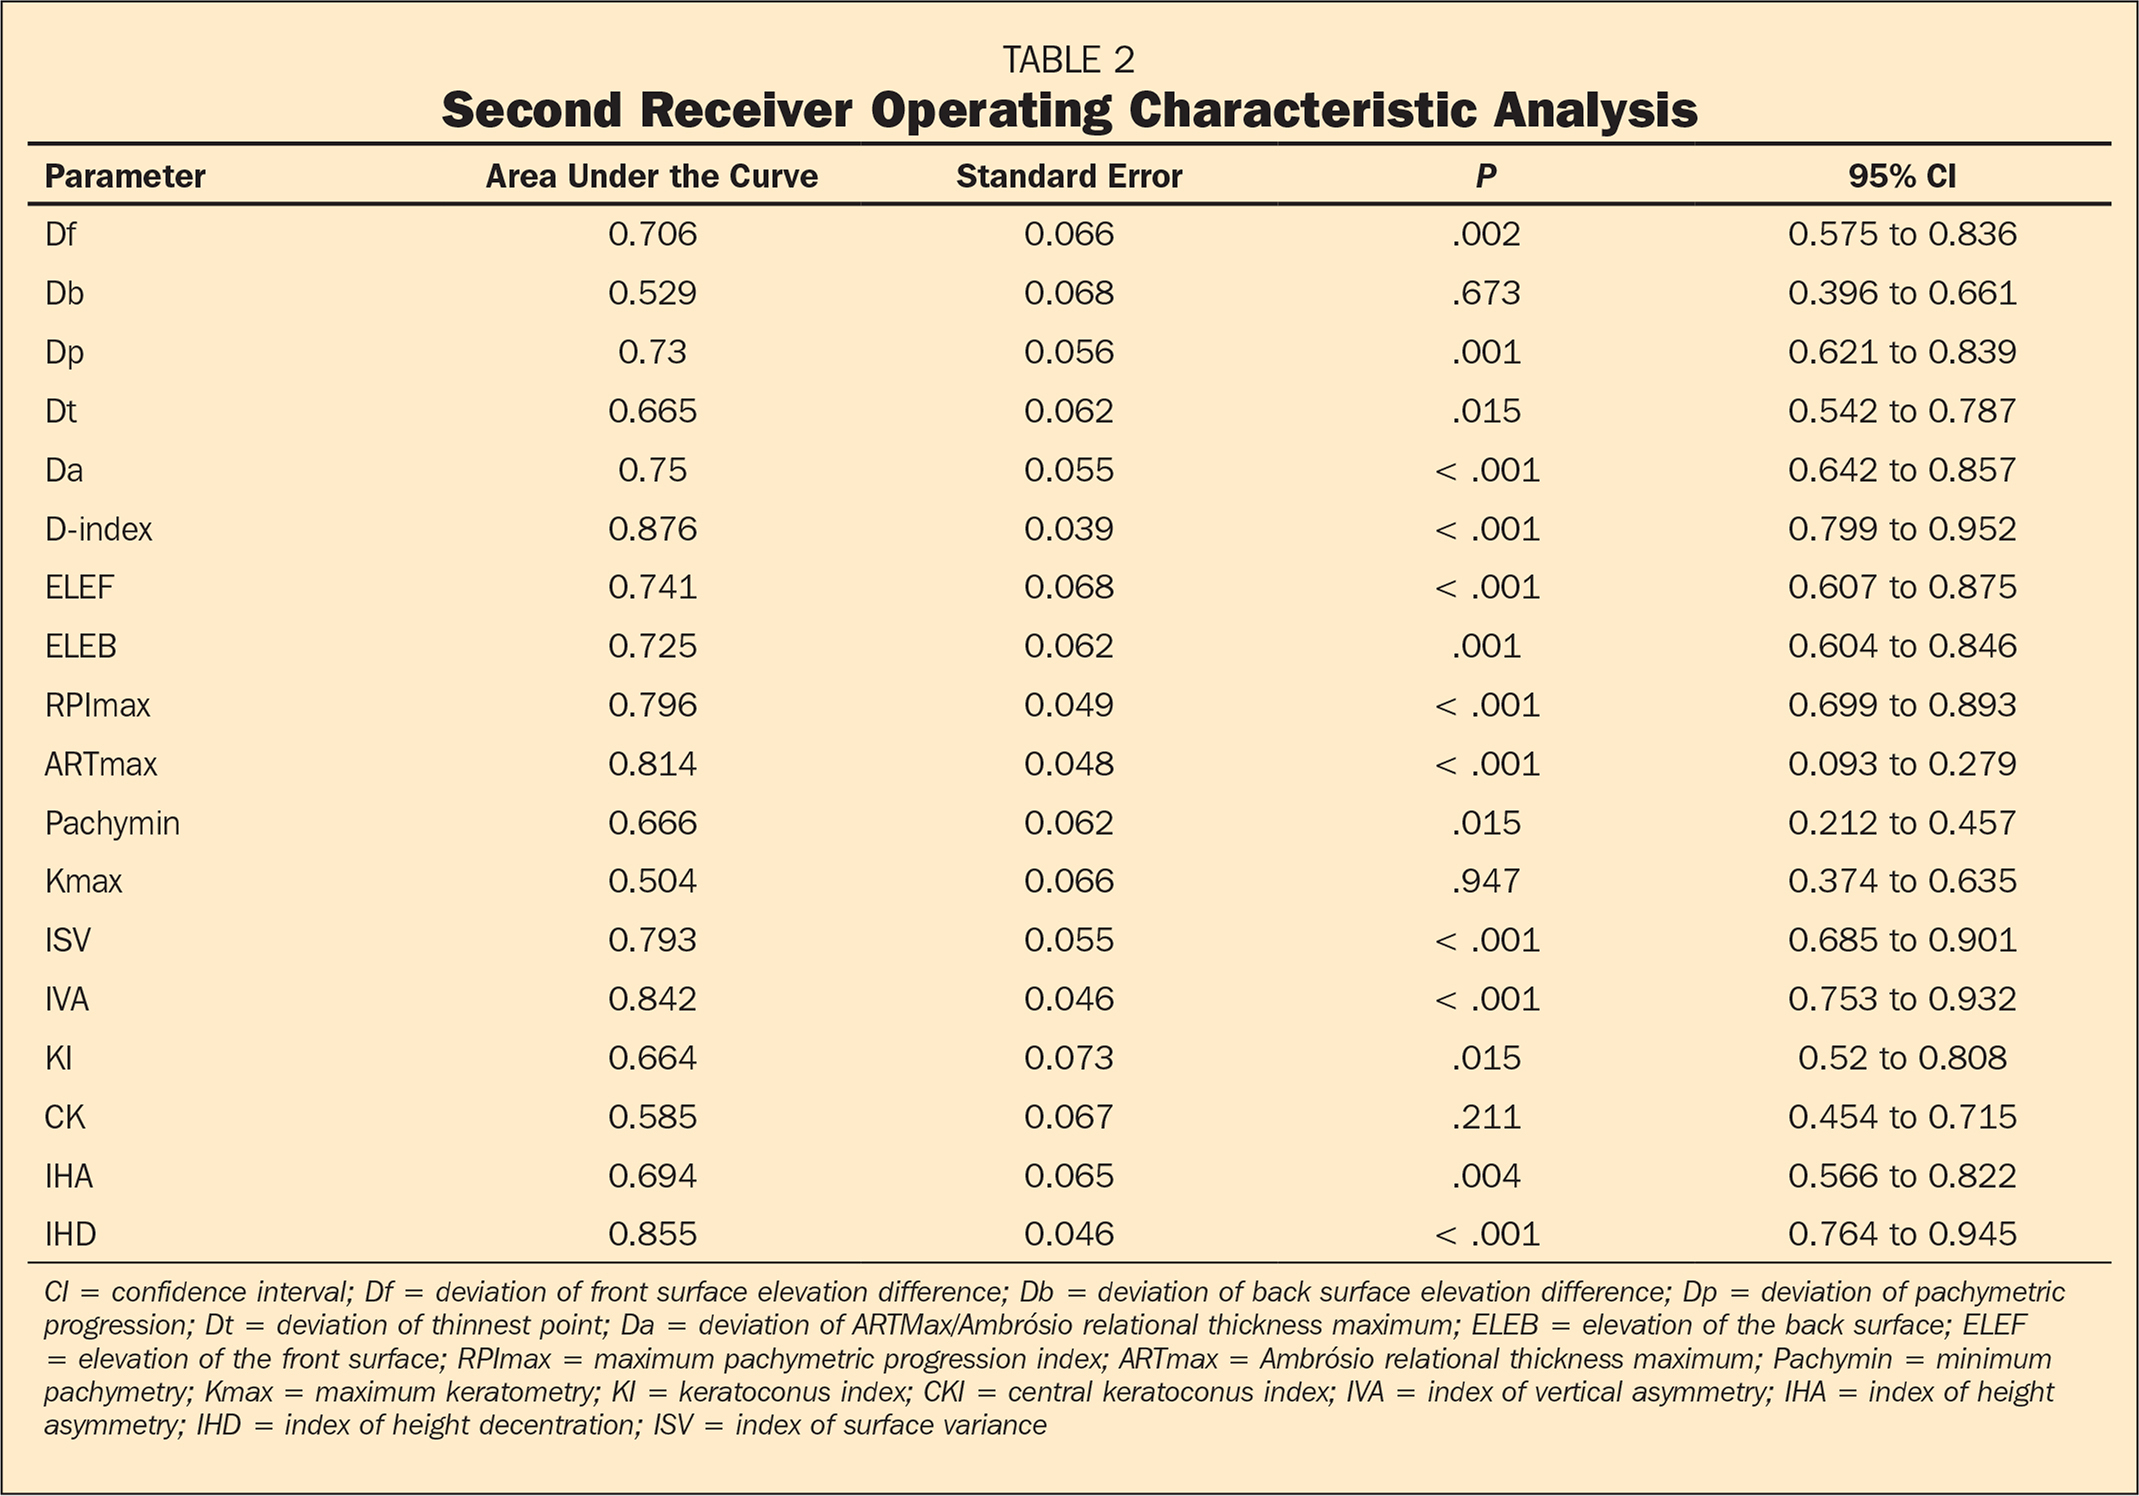 Second Receiver Operating Characteristic Analysis